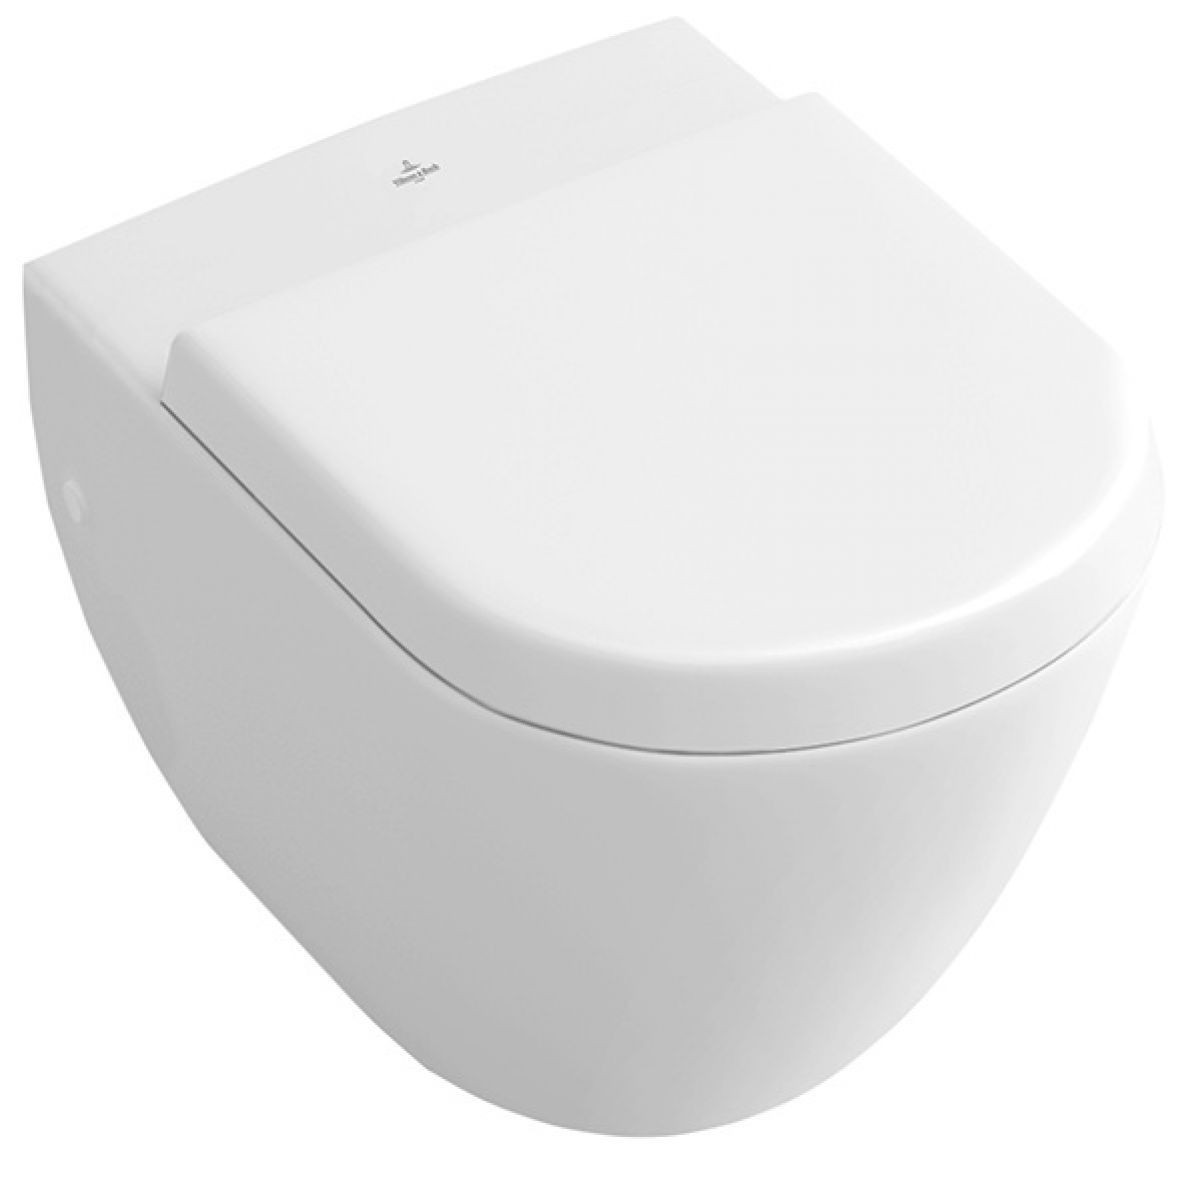 Villeroy and boch subway compact wall hung toilet uk - Villeroy and boch ...